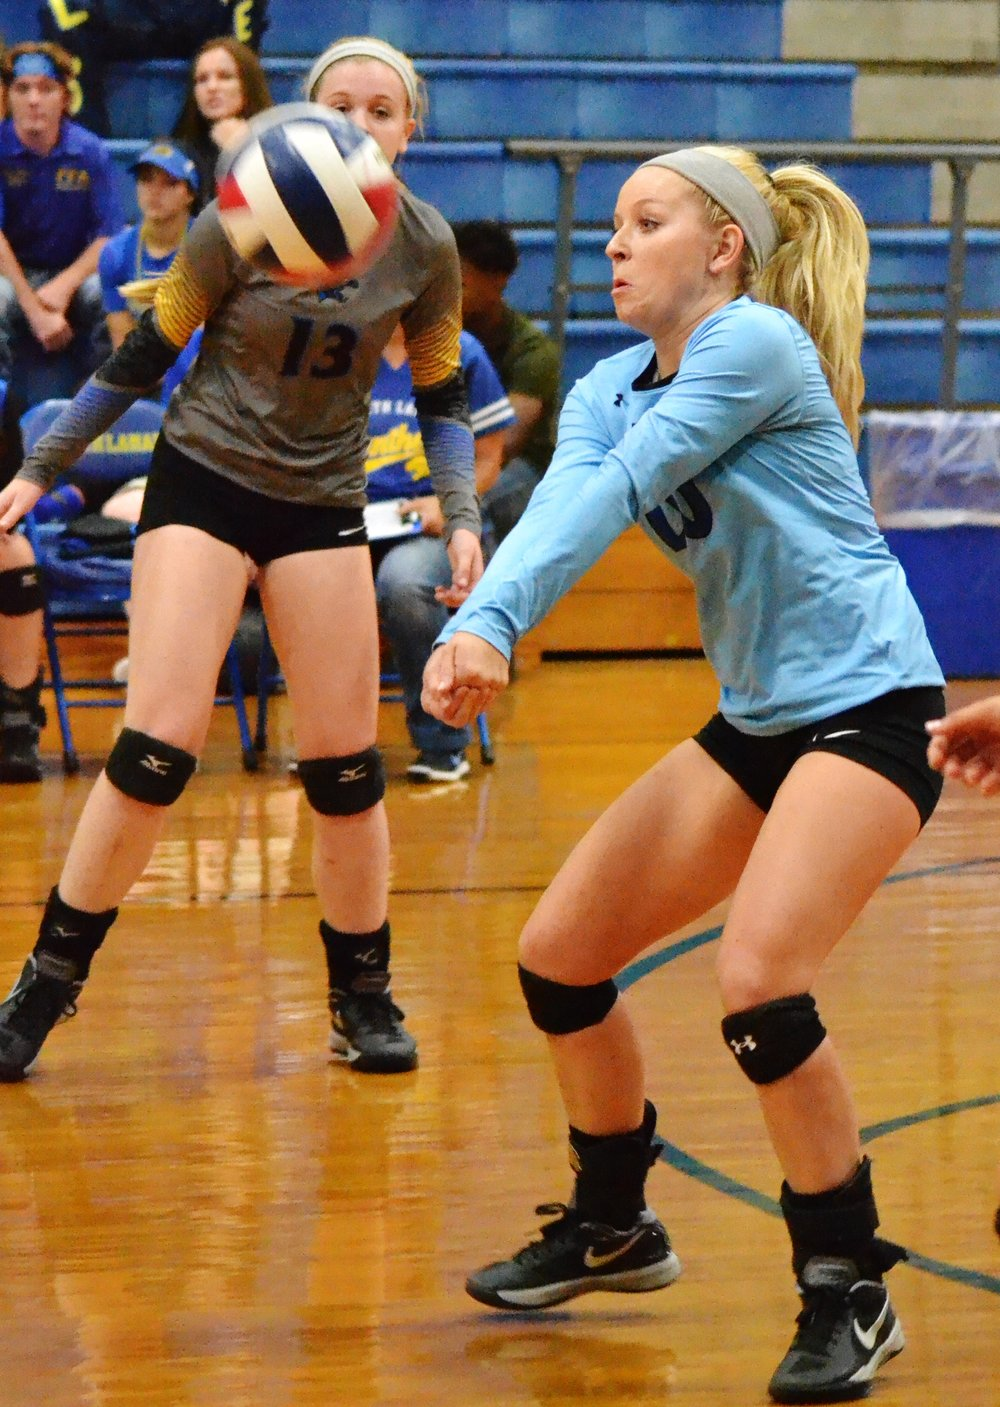 (Photo by Beverly White) Natalie Allen setting the ball for the Pantherettes against Pittsburg.